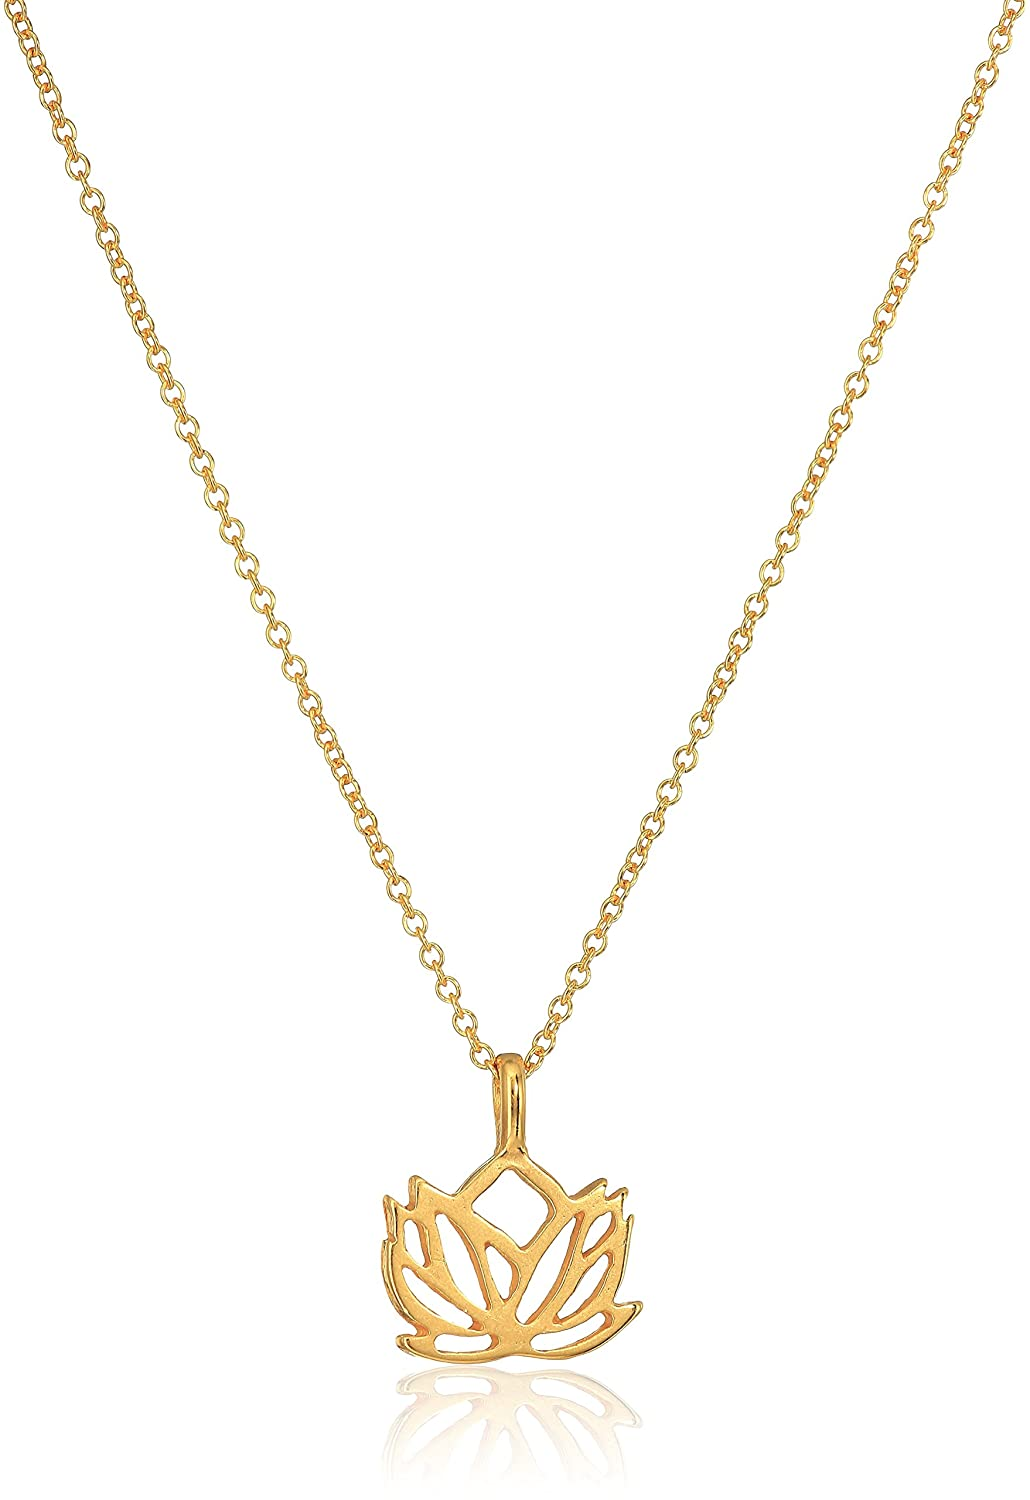 ... Dogeared New Beginnings Rising Lotus Gold Dipped 16 with 2 Extender Necklace Dogeared Jewels & Gifts ...